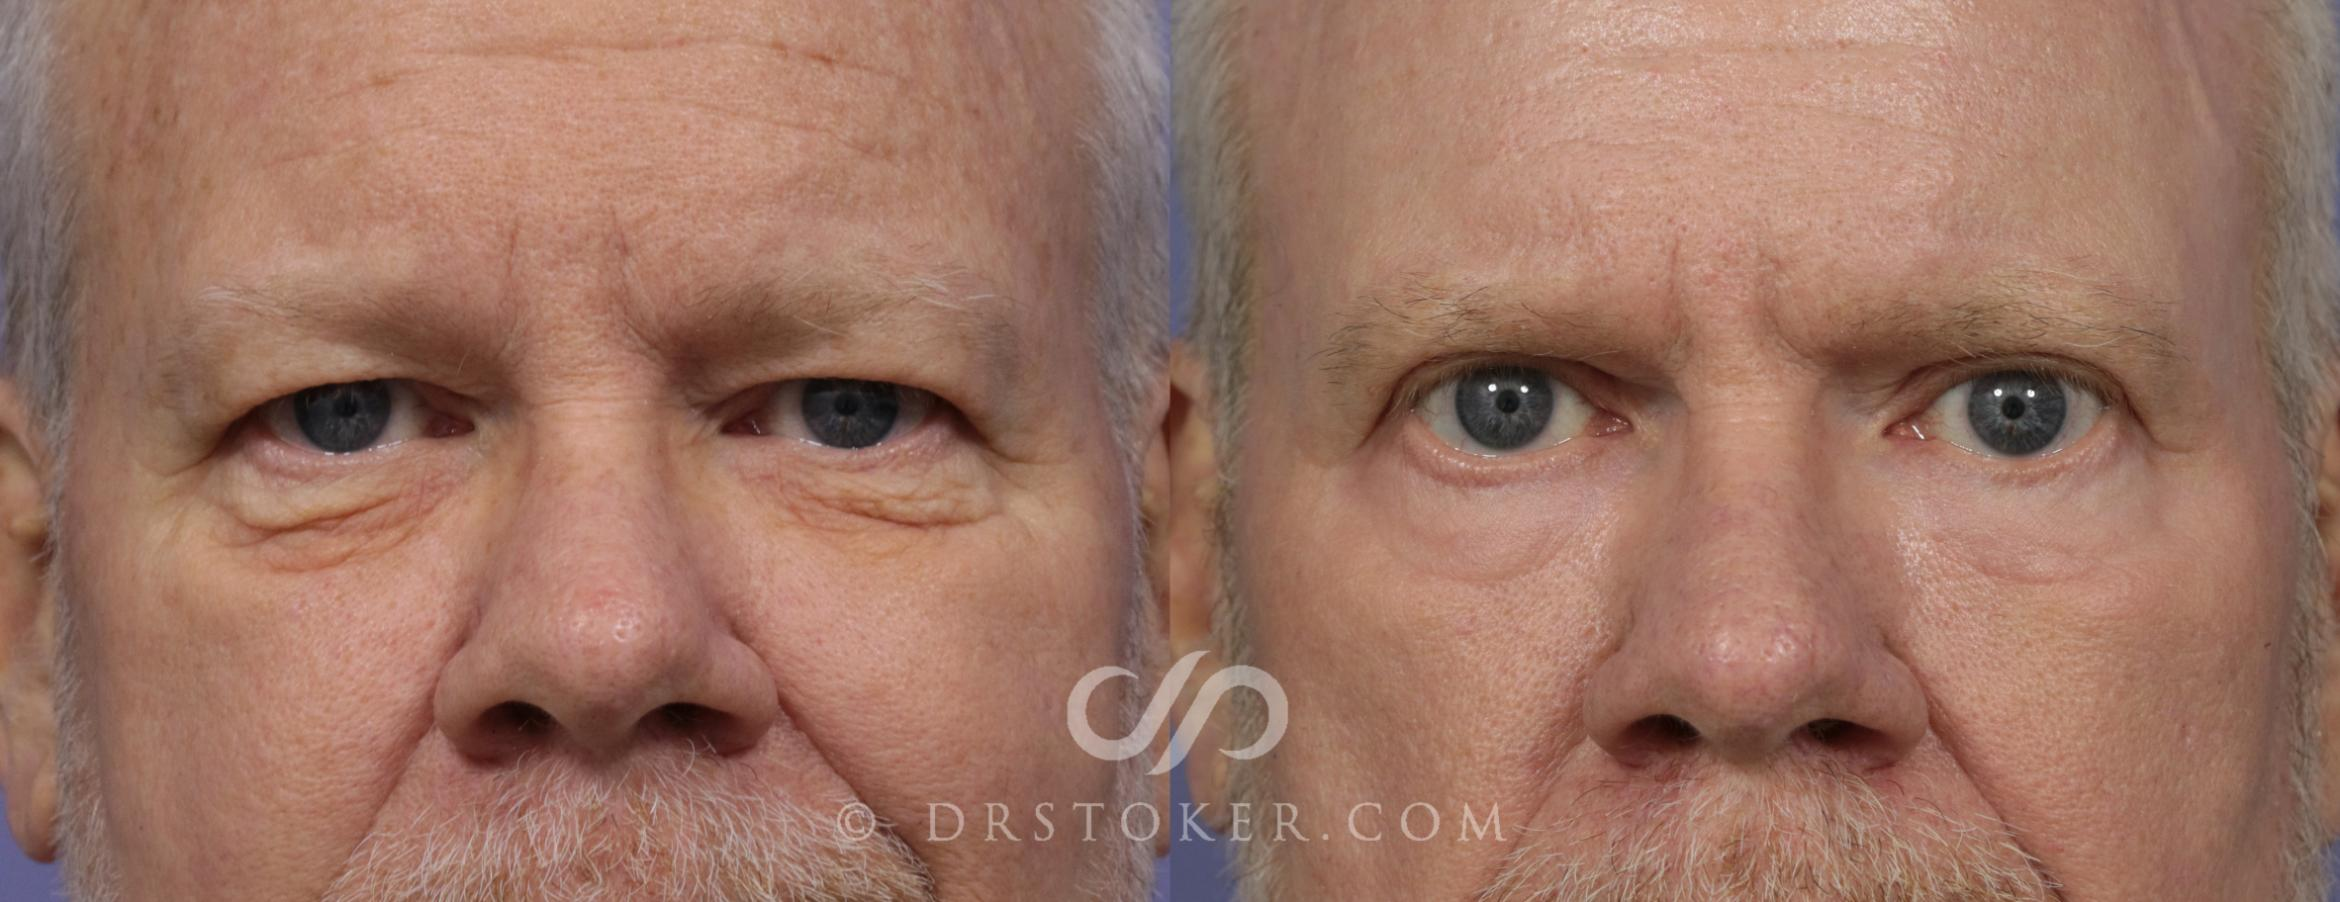 Eyelid Surgery for Men Case 861 Before & After View #1 | Marina del Rey, CA | Dr. David Stoker